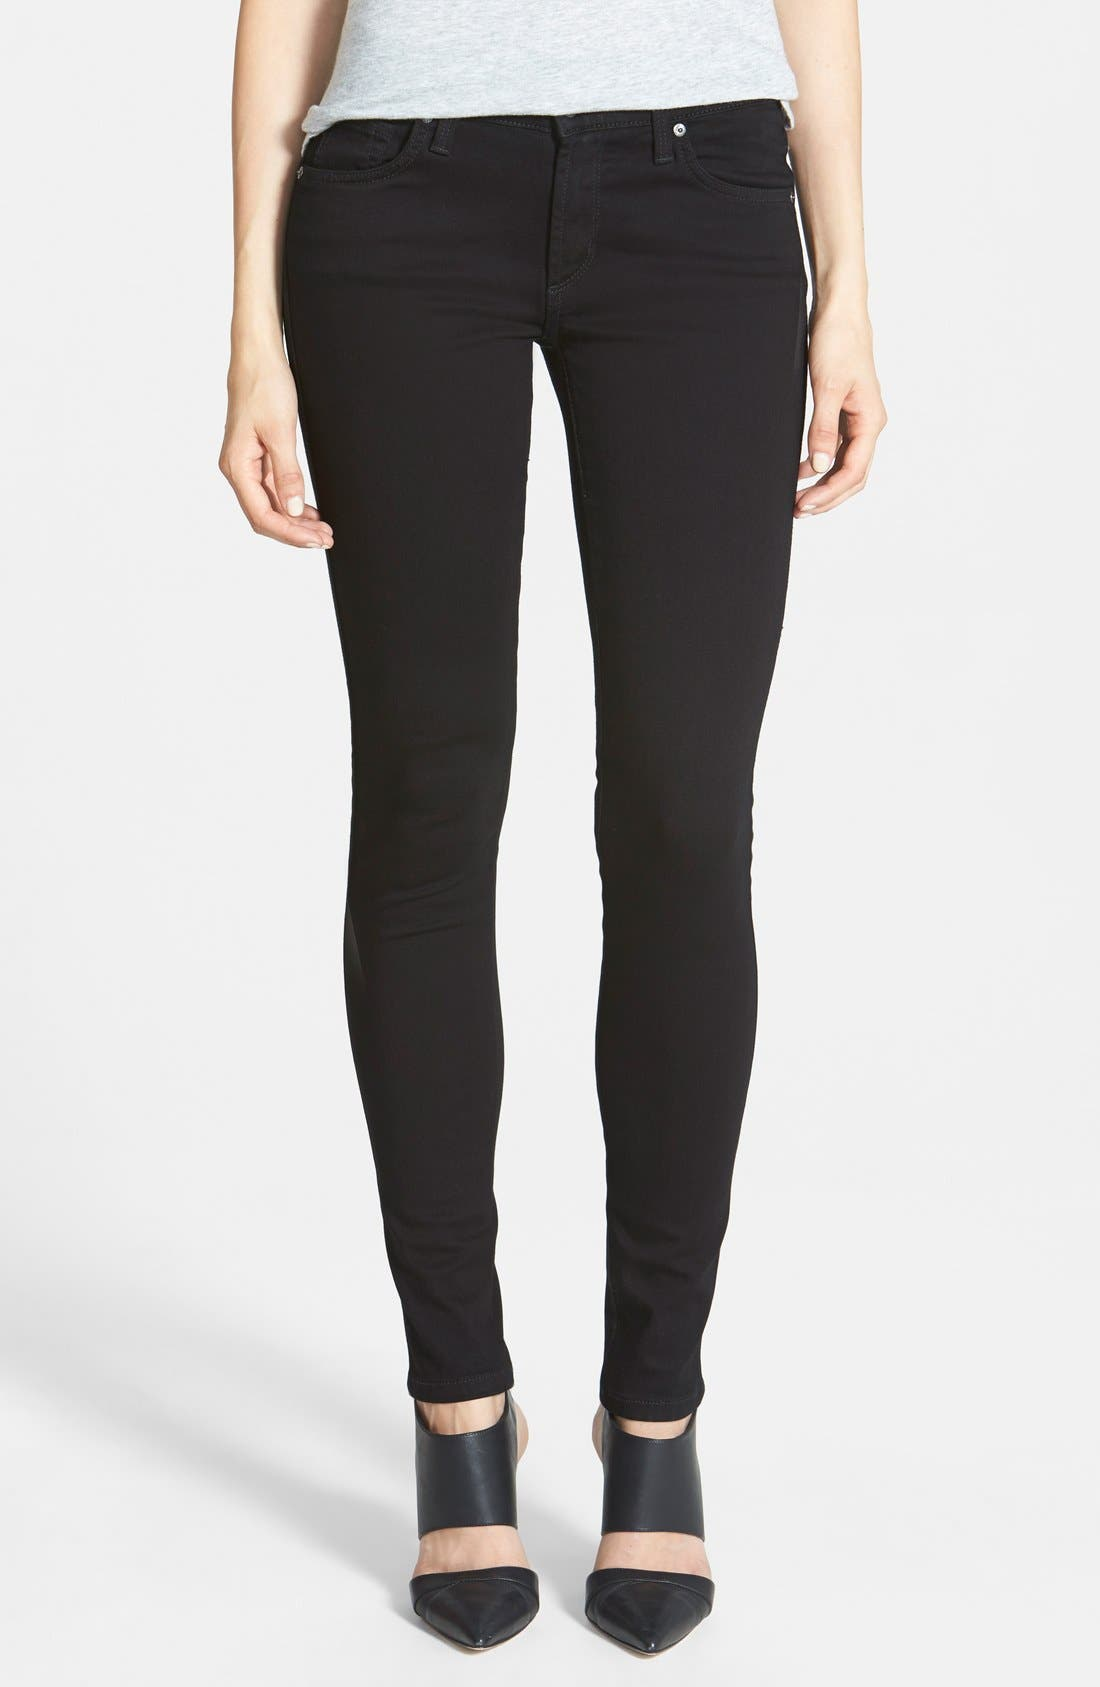 Alternate Image 1 Selected - James Jeans 'Twiggy' Five Pocket Leggings (Black Clean)